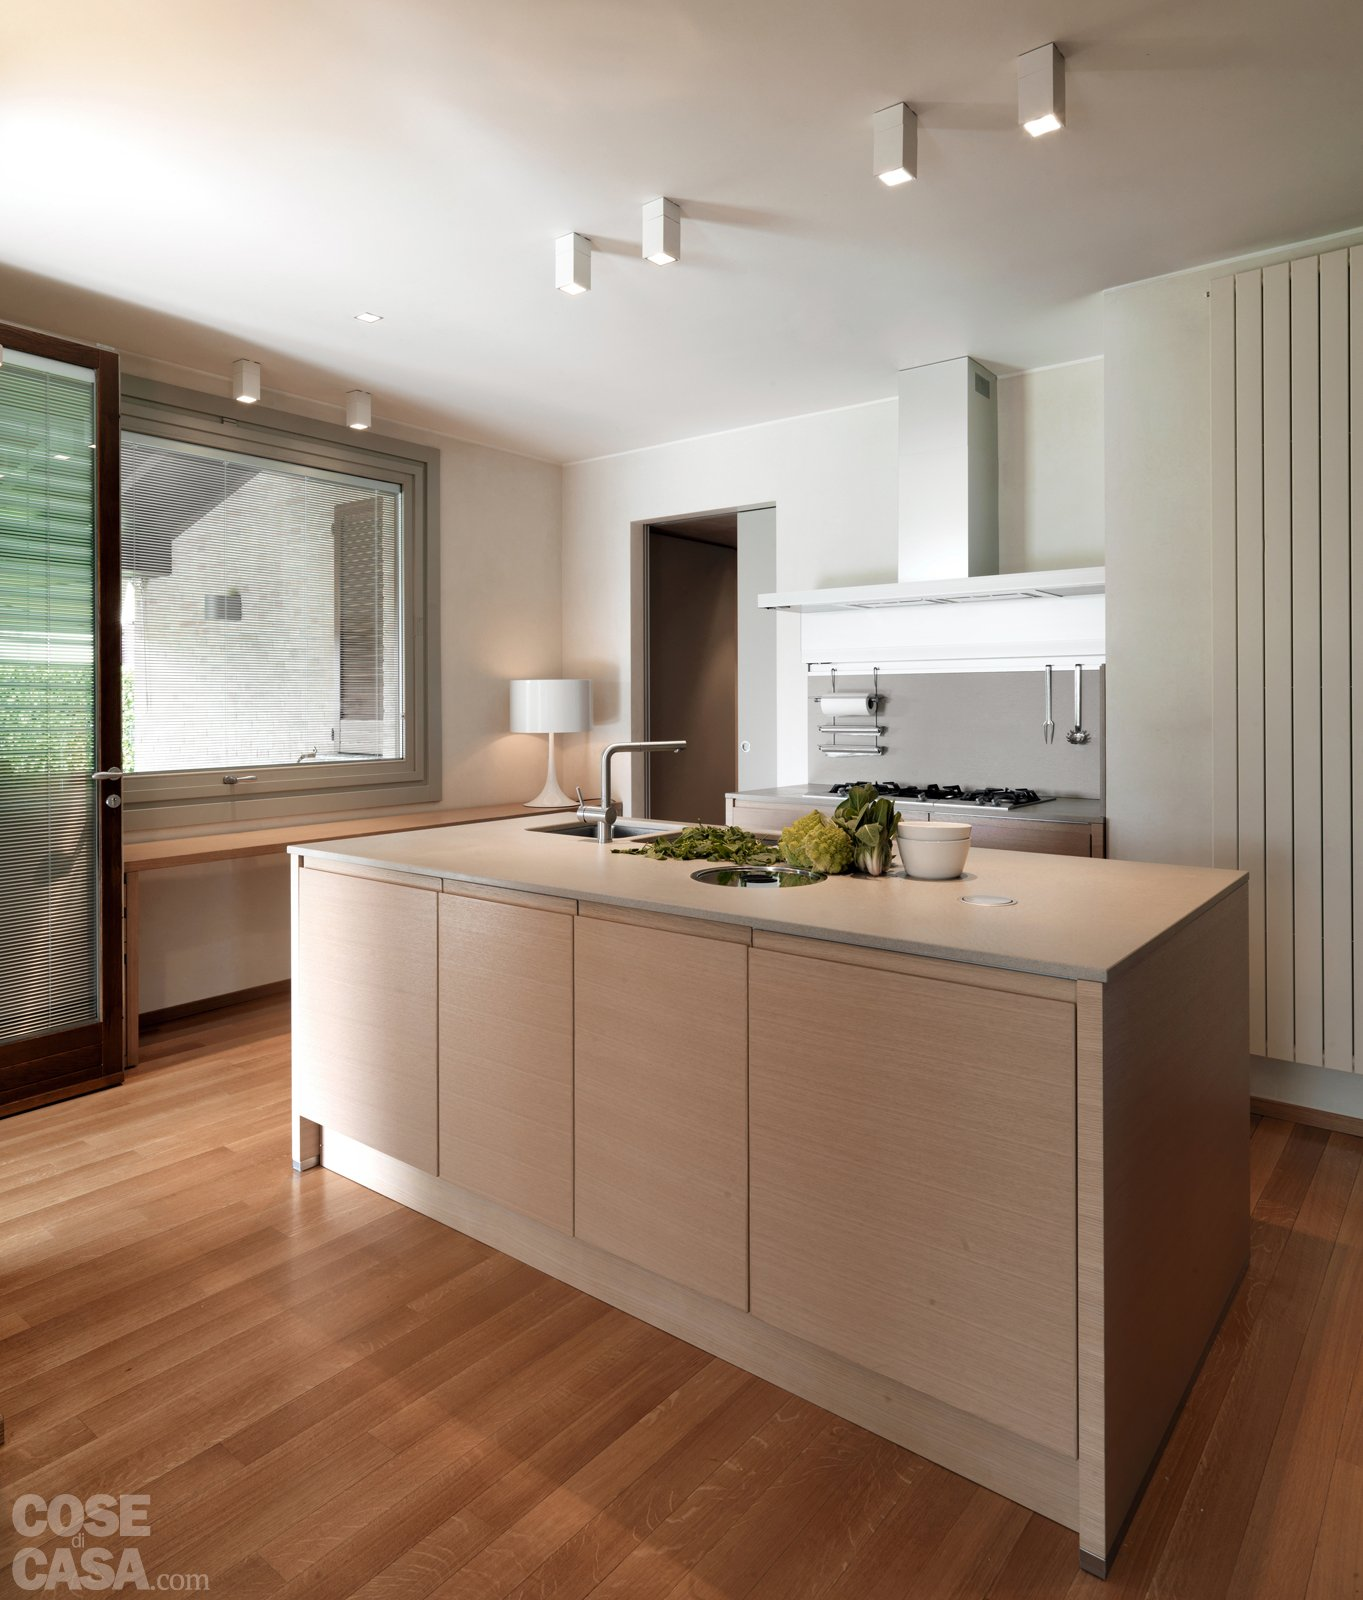 Emejing Cucina Con Parquet Pictures - Skilifts.us - skilifts.us